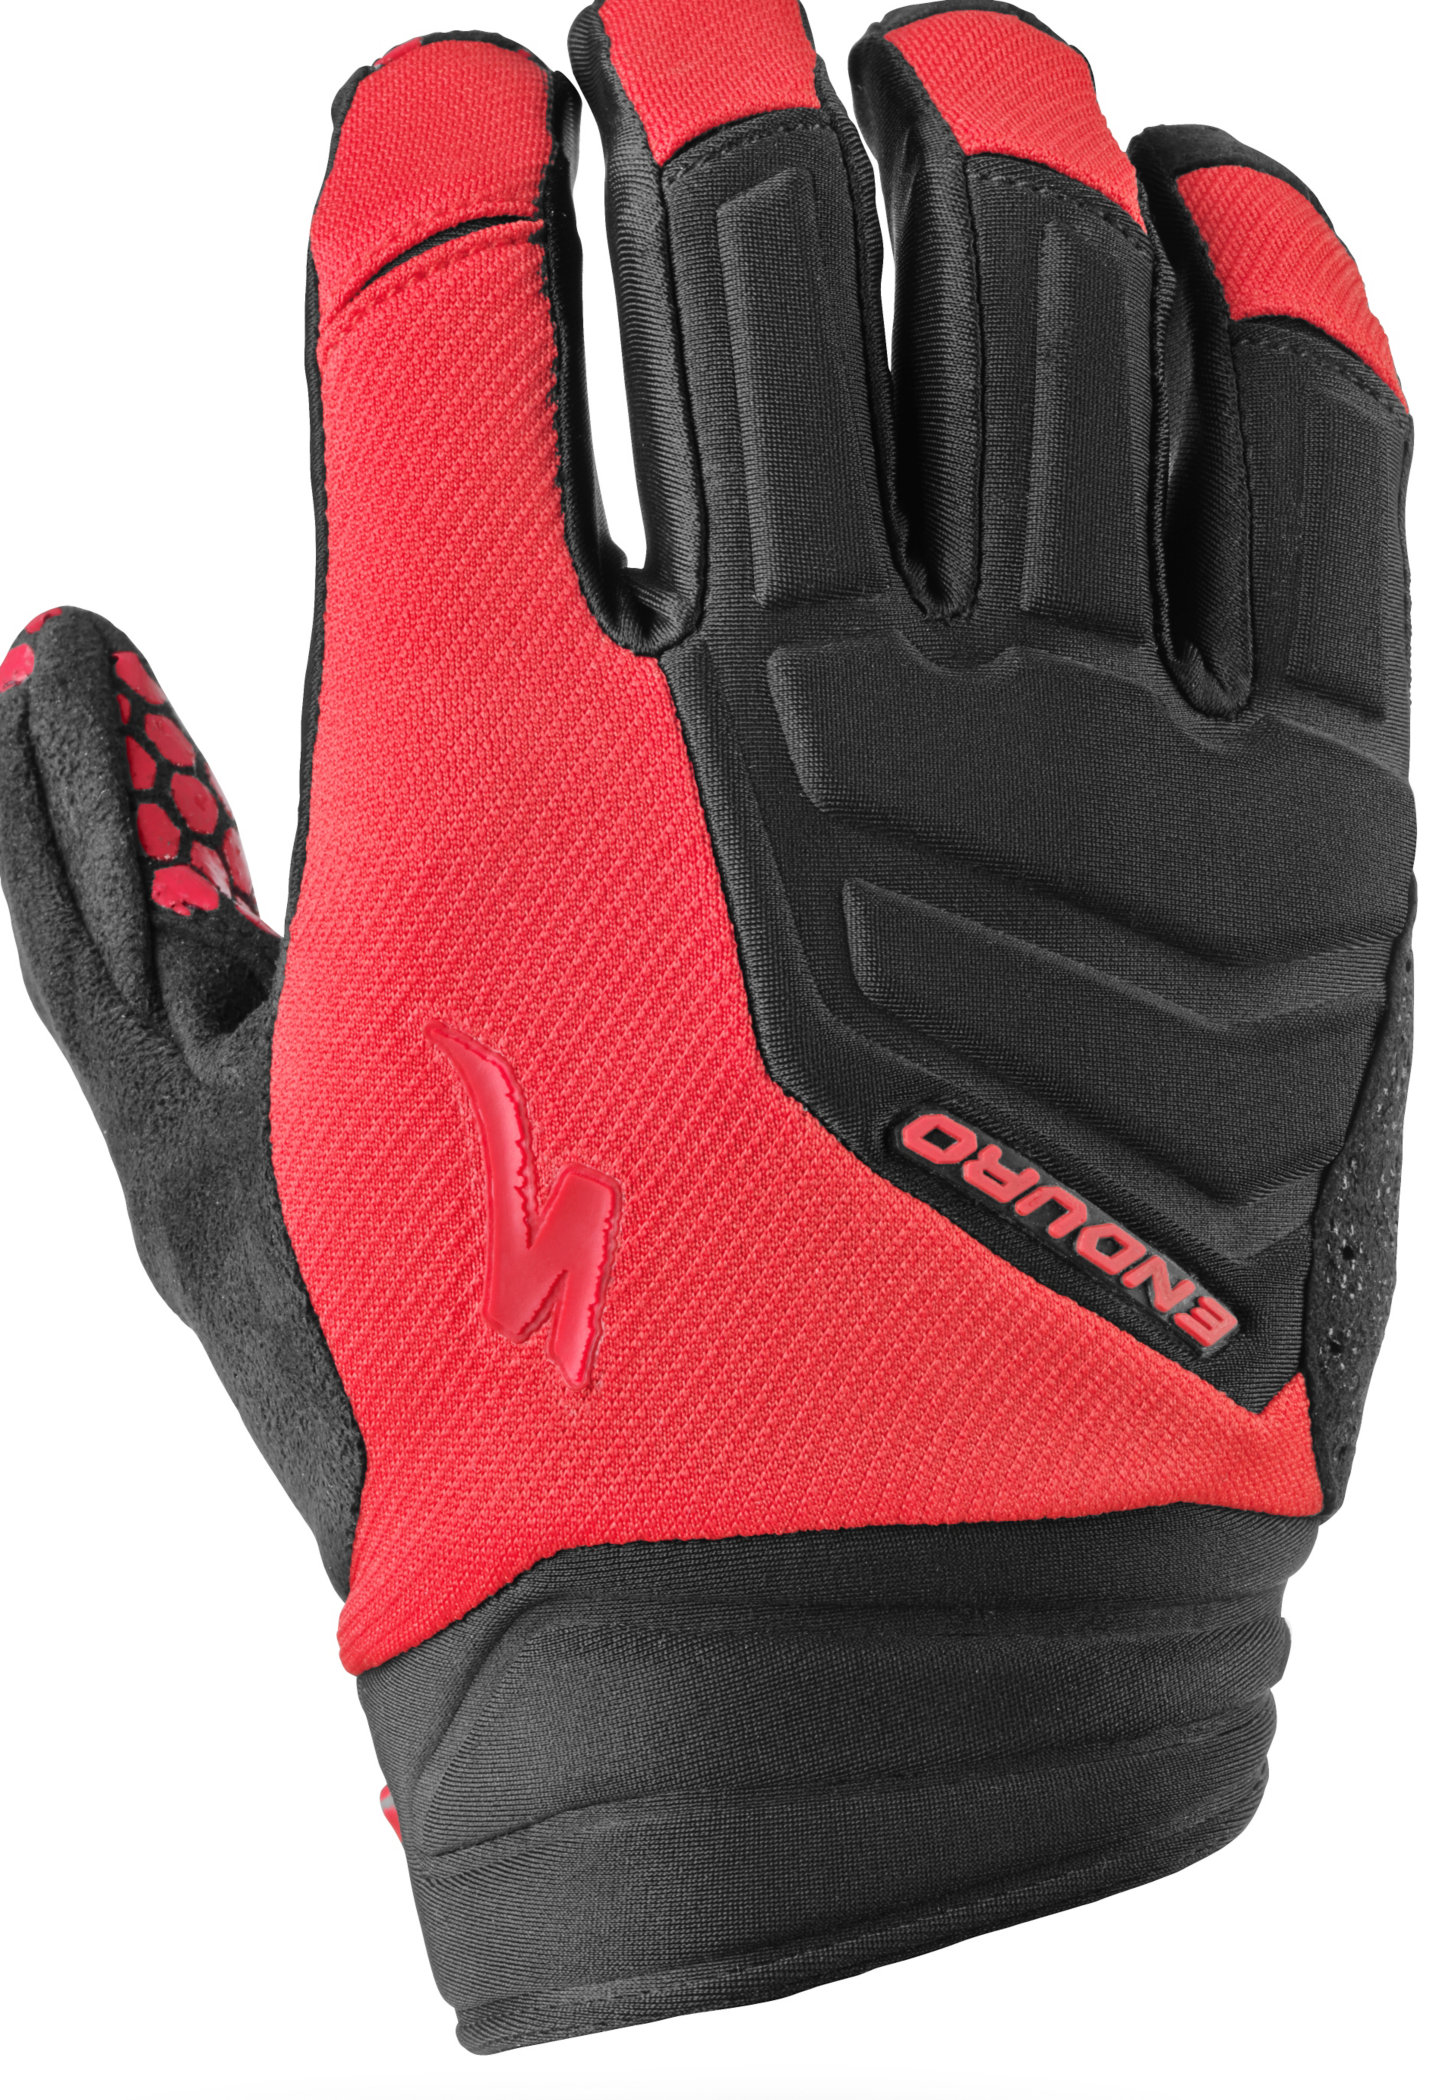 SPECIALIZED ENDURO GLOVE LF RED S - Bikedreams & Dustbikes